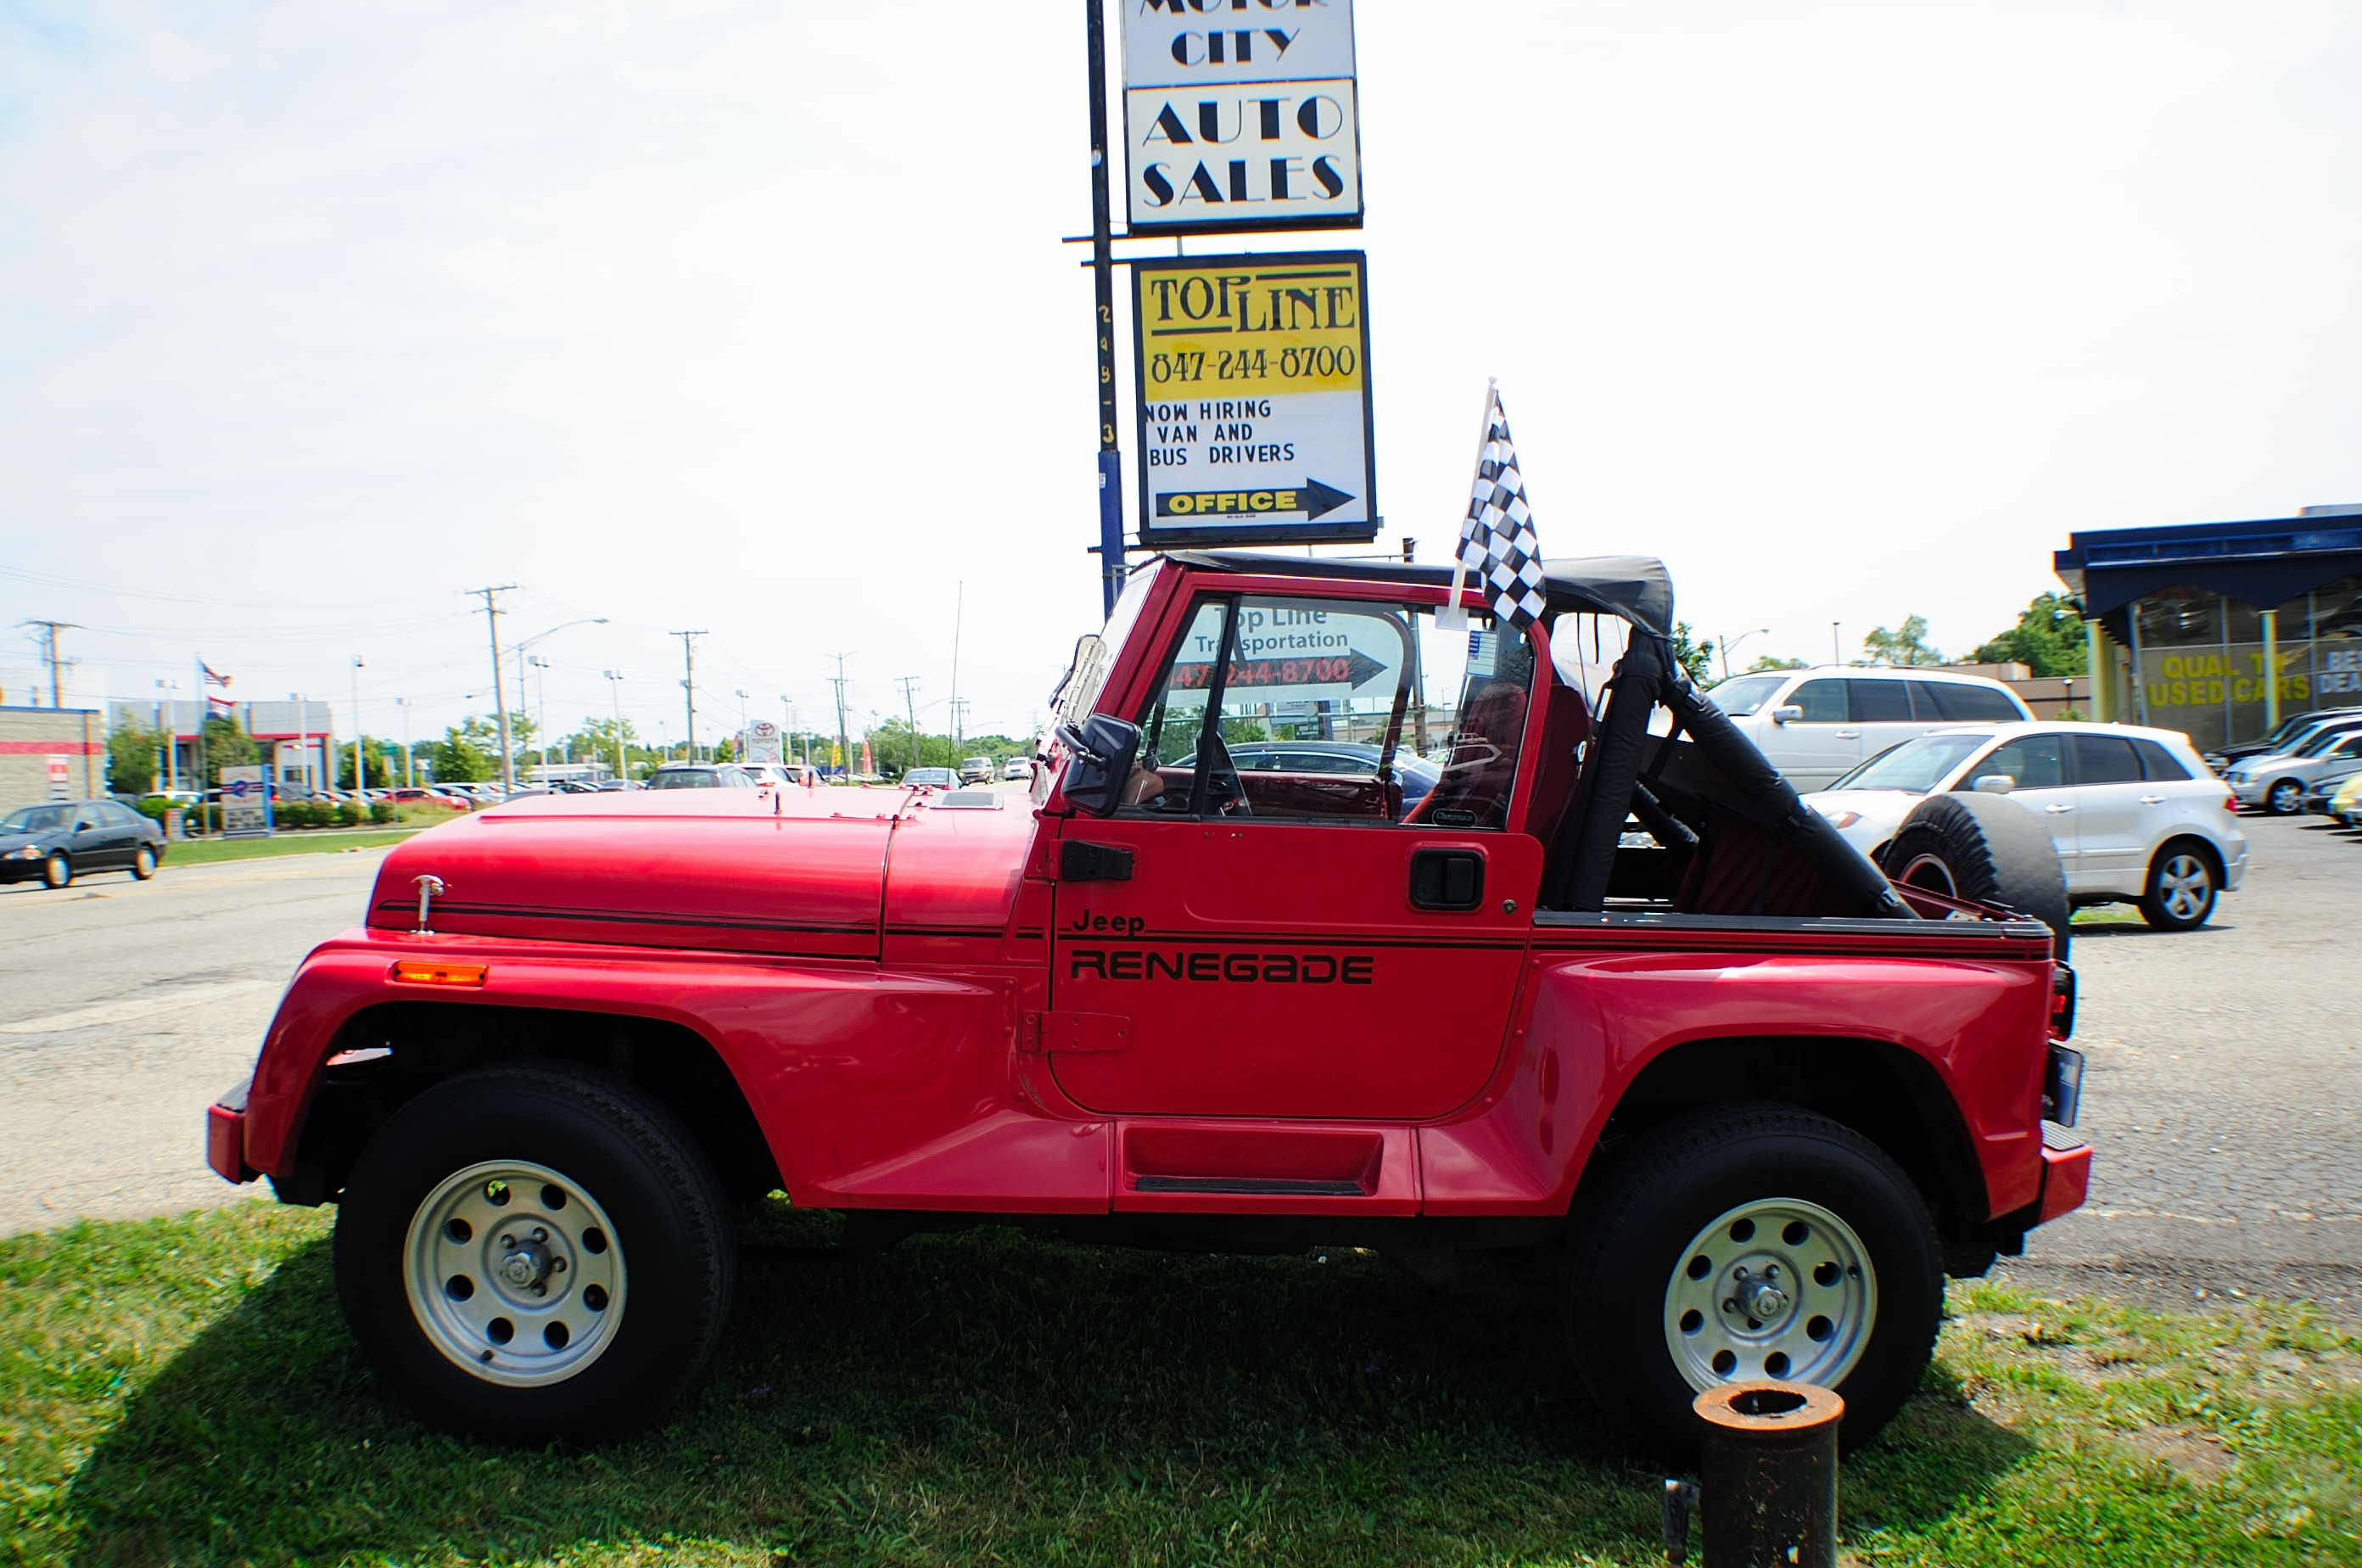 1991 Jeep Wrangler Renegade Red 4x4 Sale Antioch Grayslake